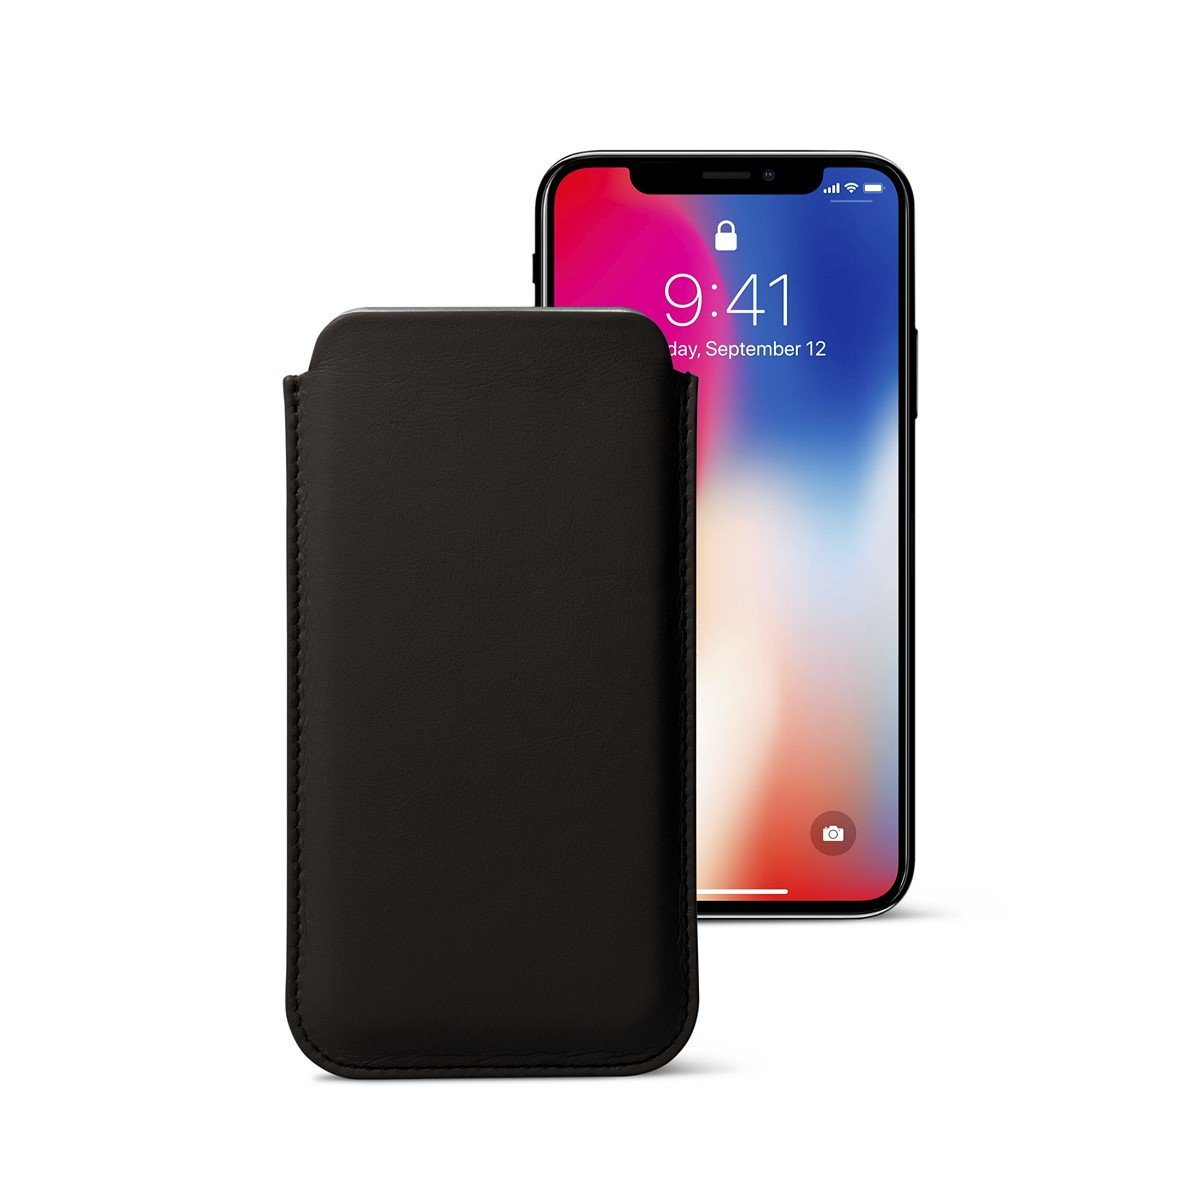 Lucrin - Classic Case for iPhone X - Dark Brown - Smooth Leather